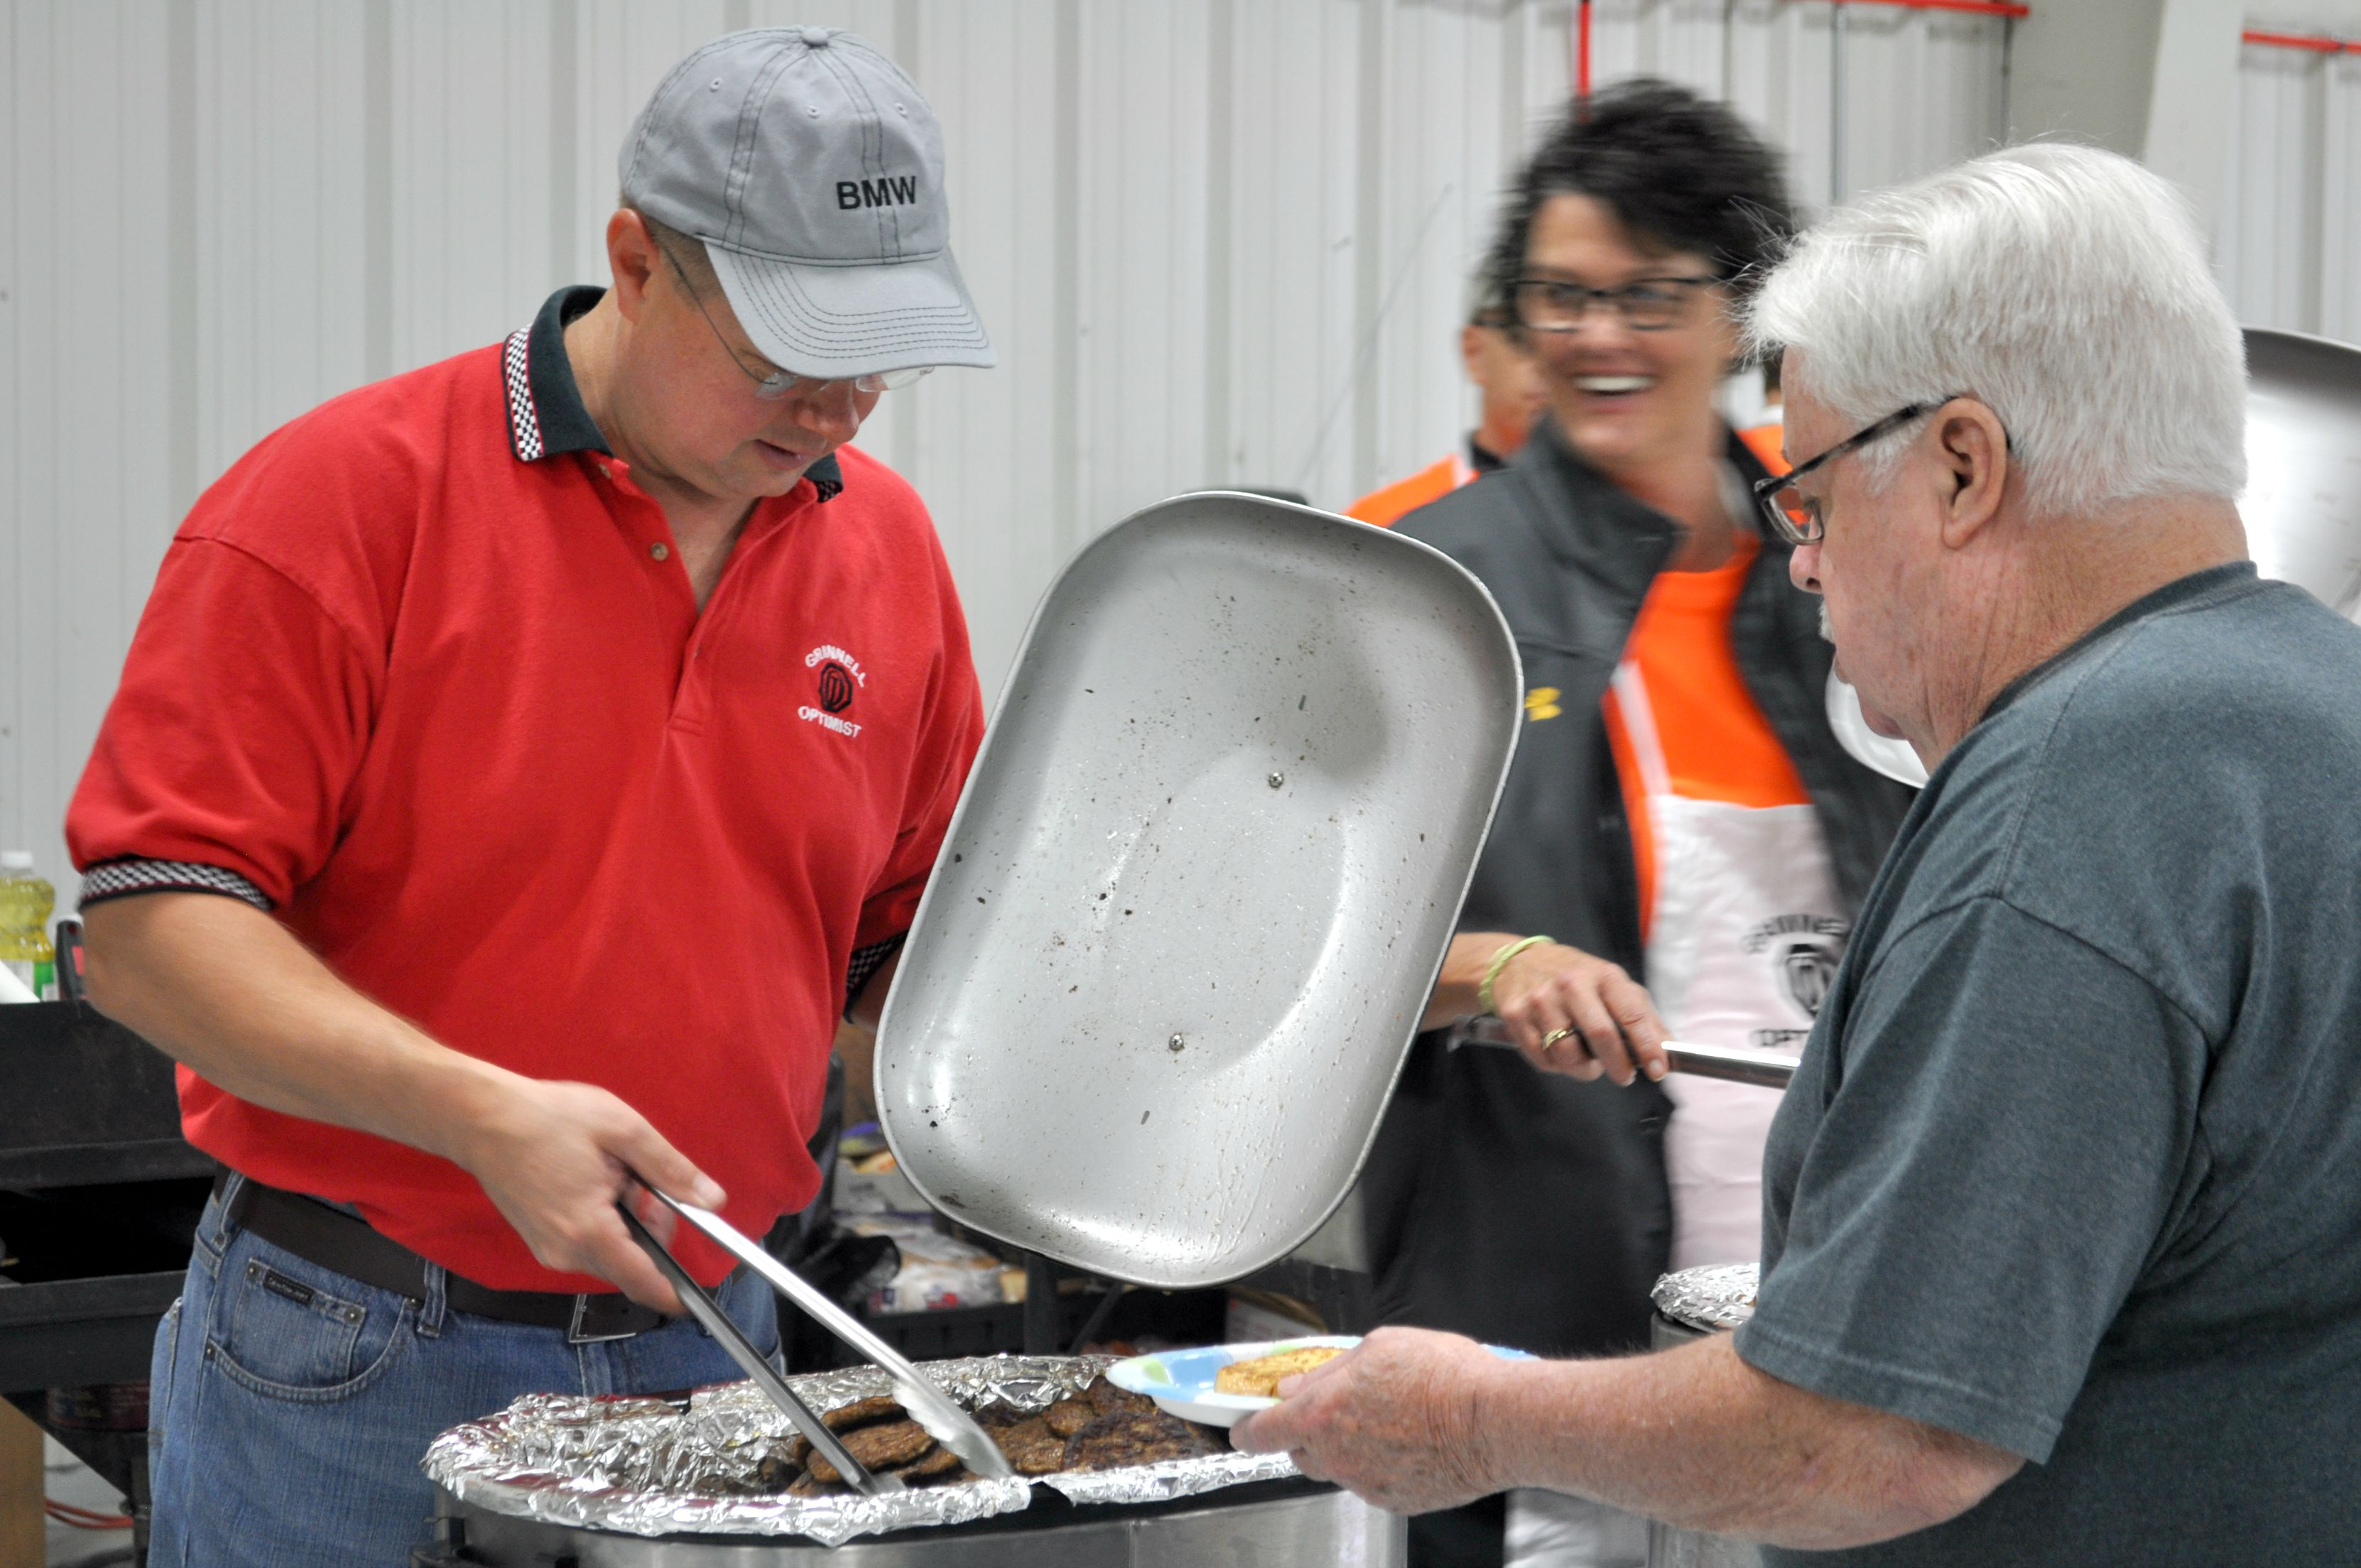 The Grinnell Optimist Club served approximately 450 people breakfast Saturday morning.